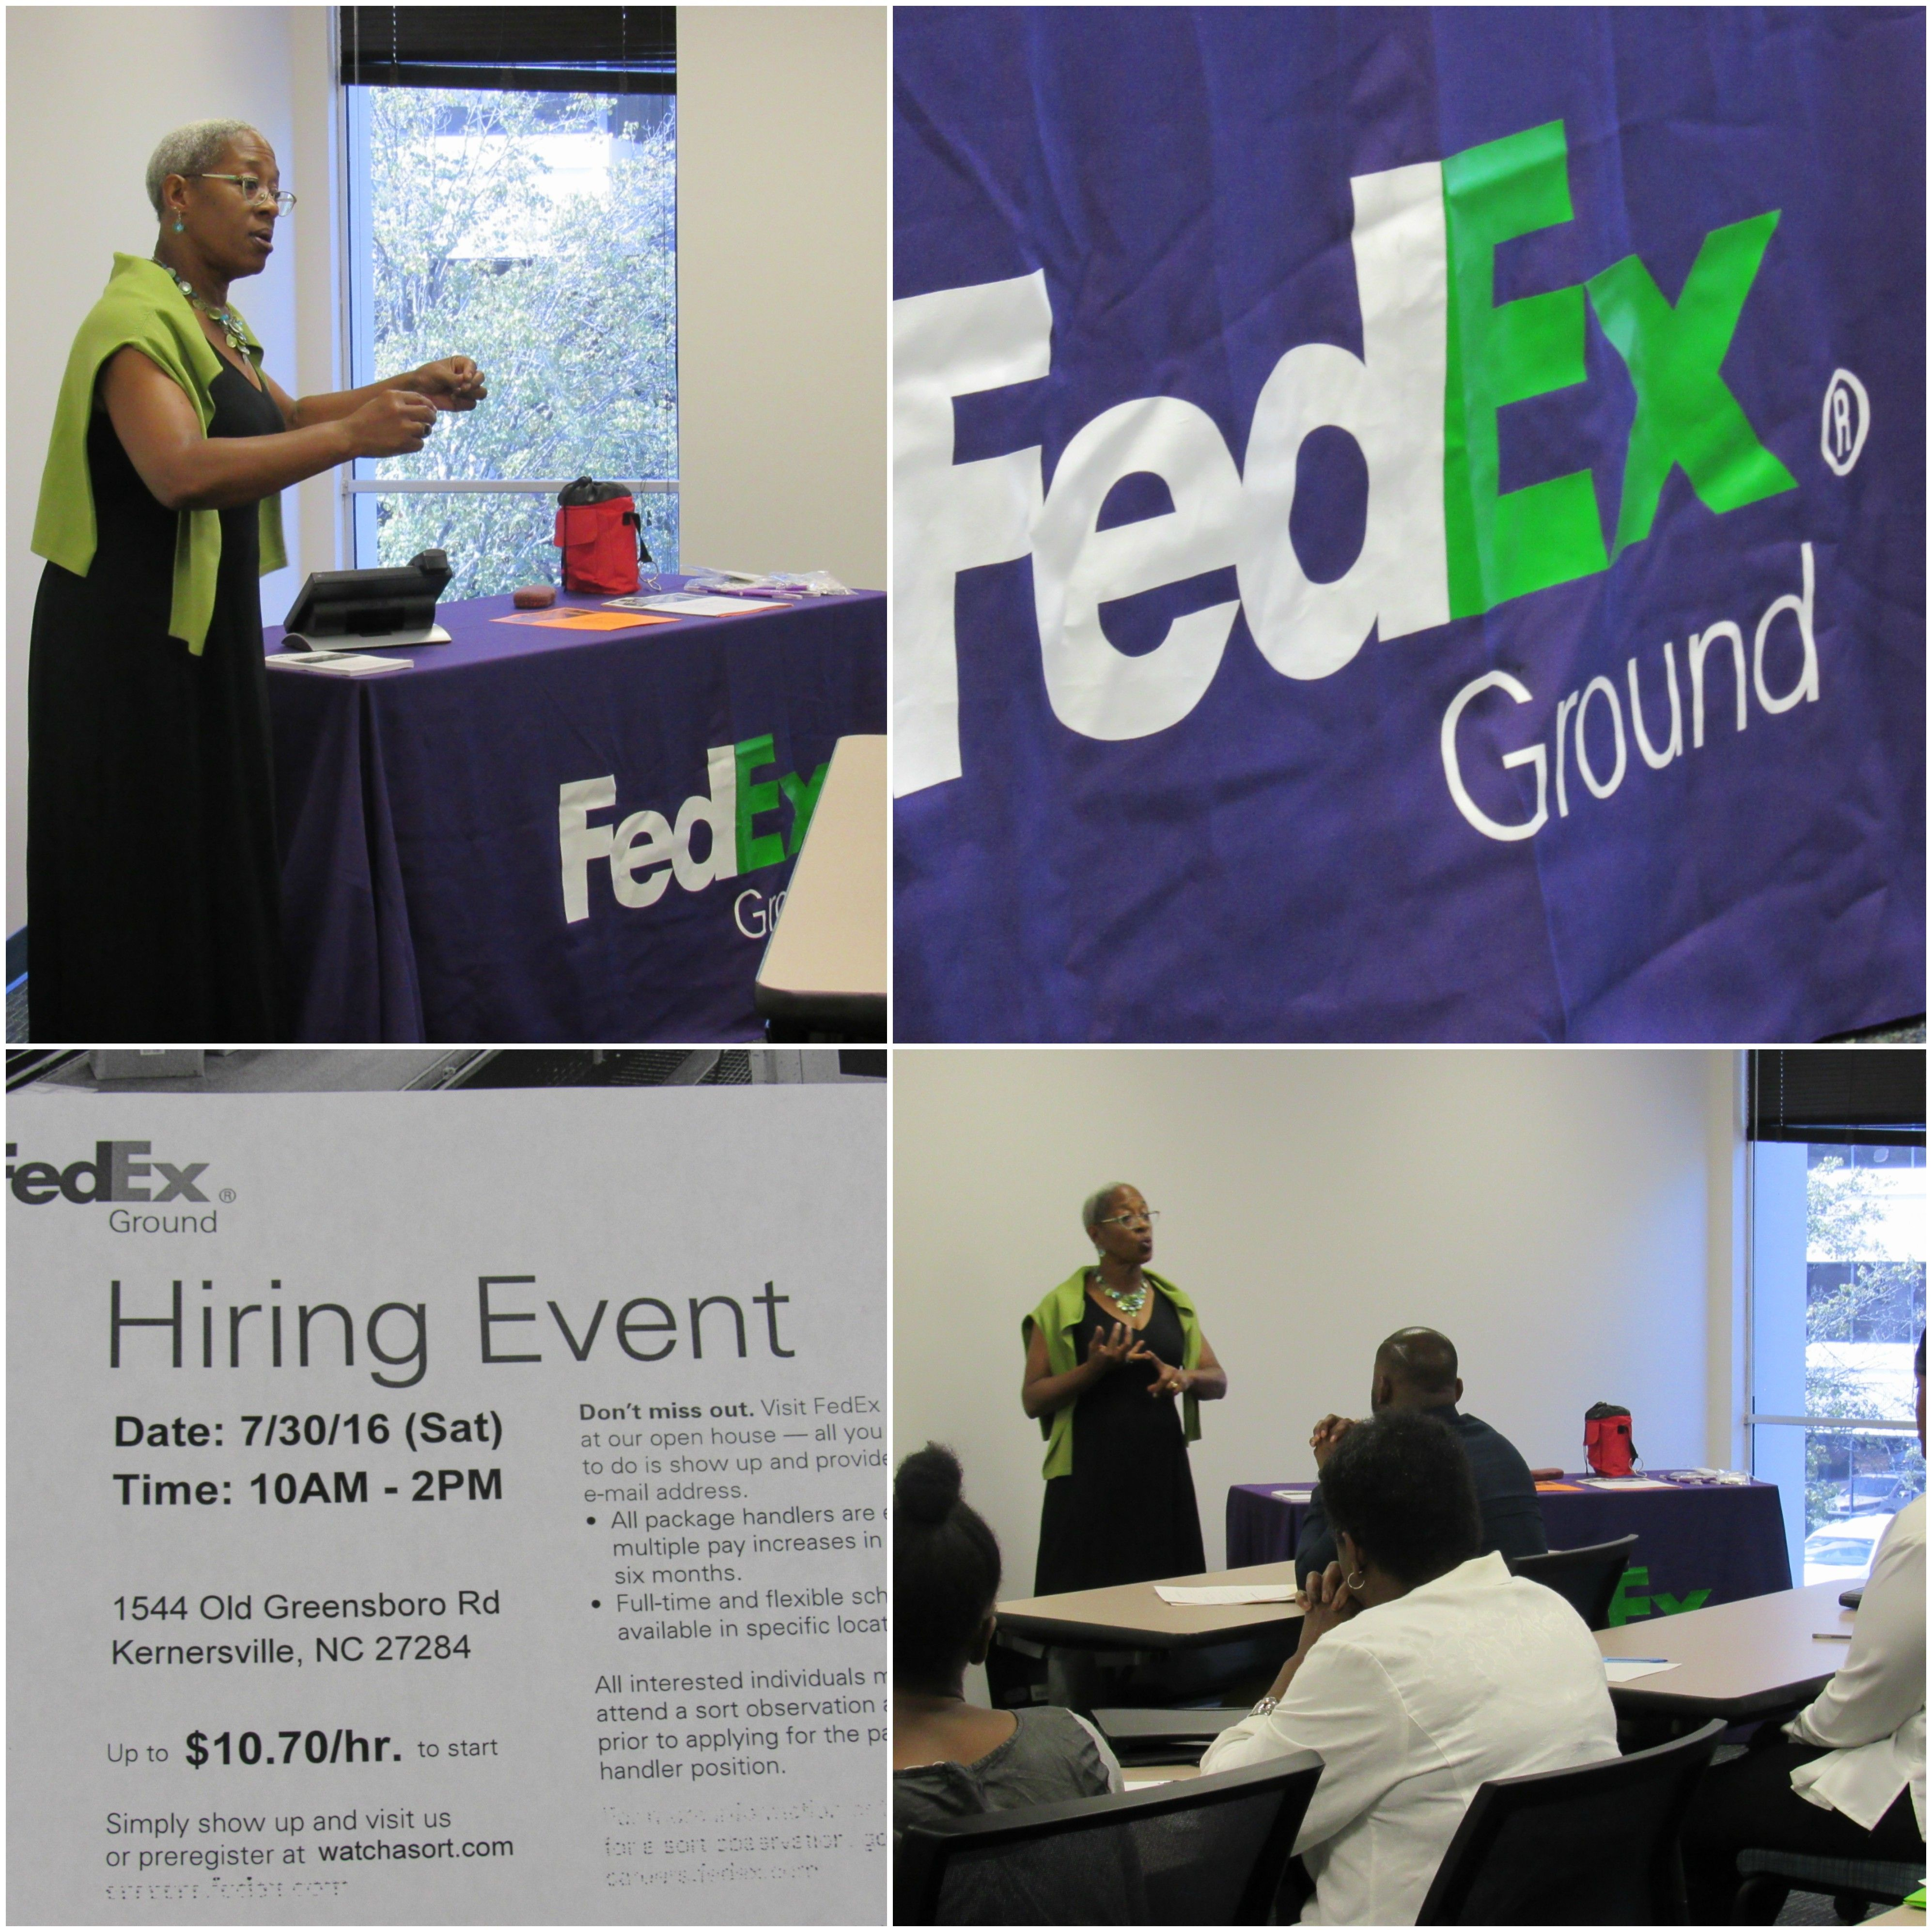 Ncworks Career Center Hosted A Hiring Event For Fedex Ground For